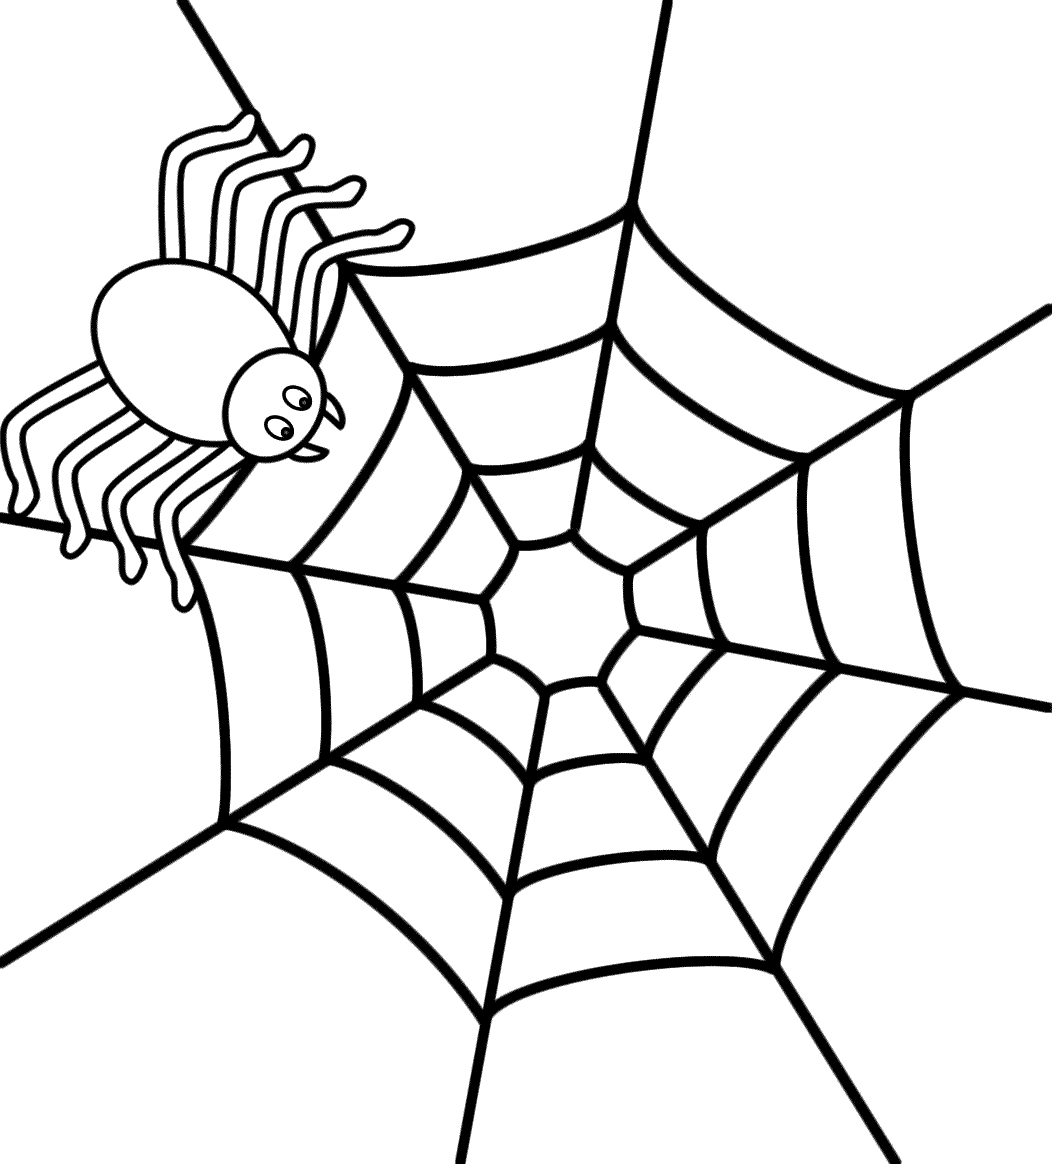 Free Printable Spider Web Coloring Pages For Kids Throughout